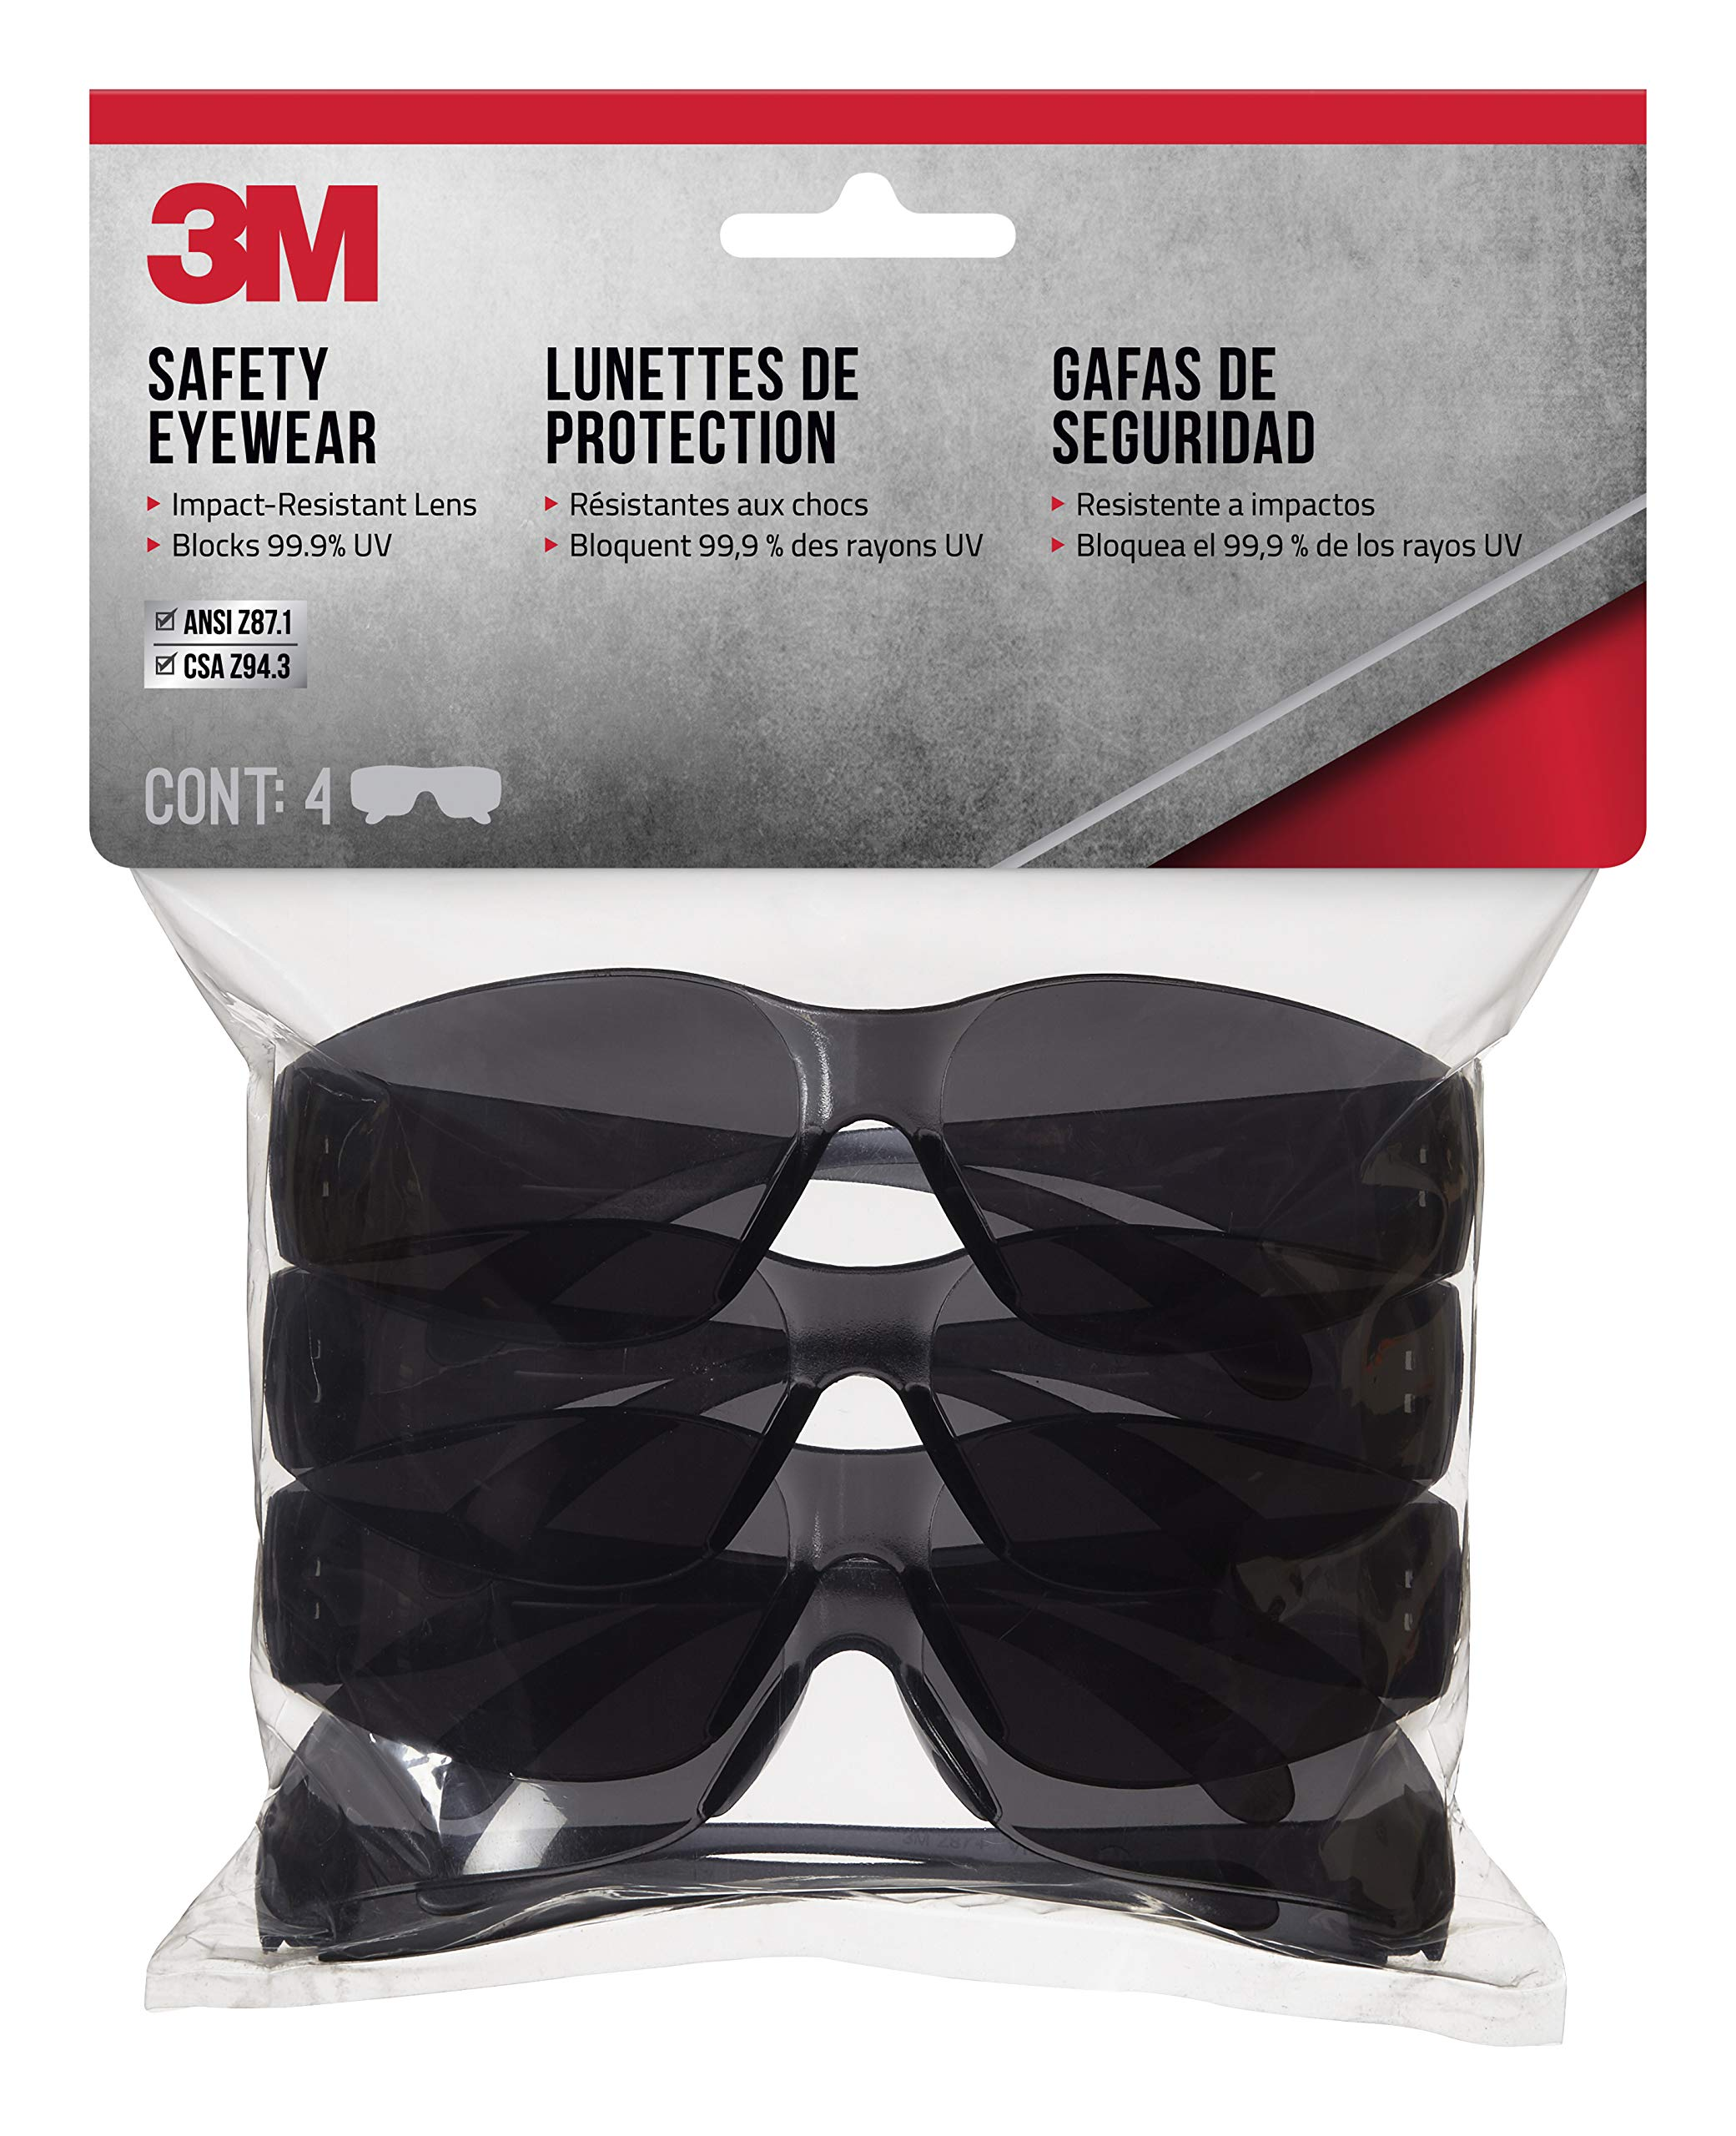 3M 90835 Outdoor Safety Eyewear, Black Frame, Gray Scratch Resistant Lenses (4 Pack) by 3M SAFETY